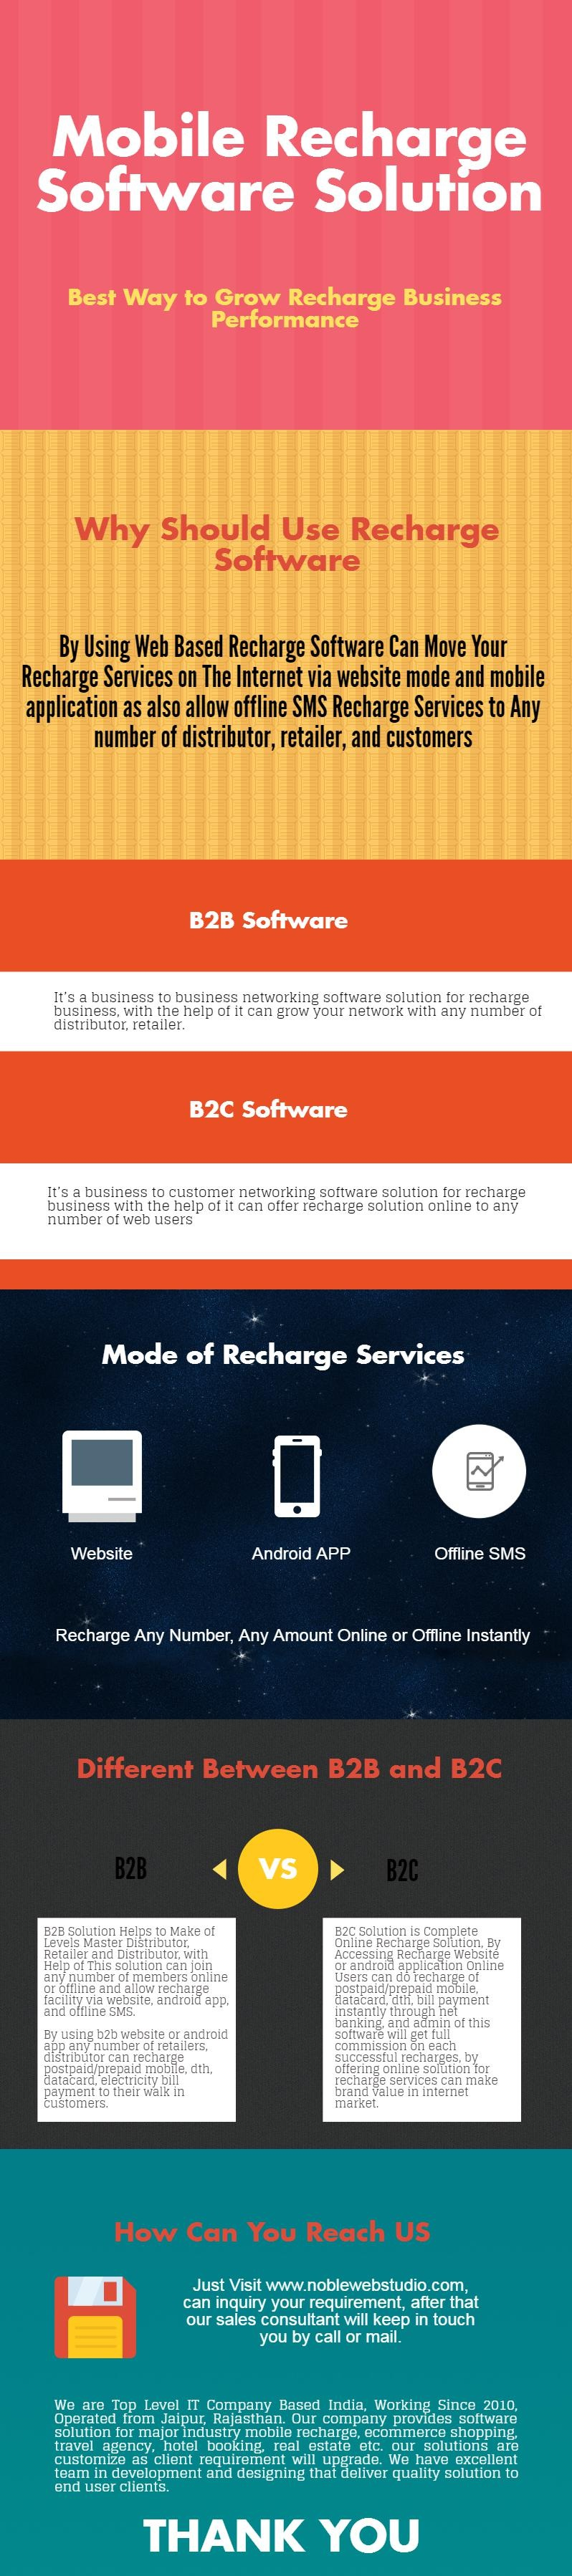 We offer Software Solution for Recharge Business In form of b2b, b2c